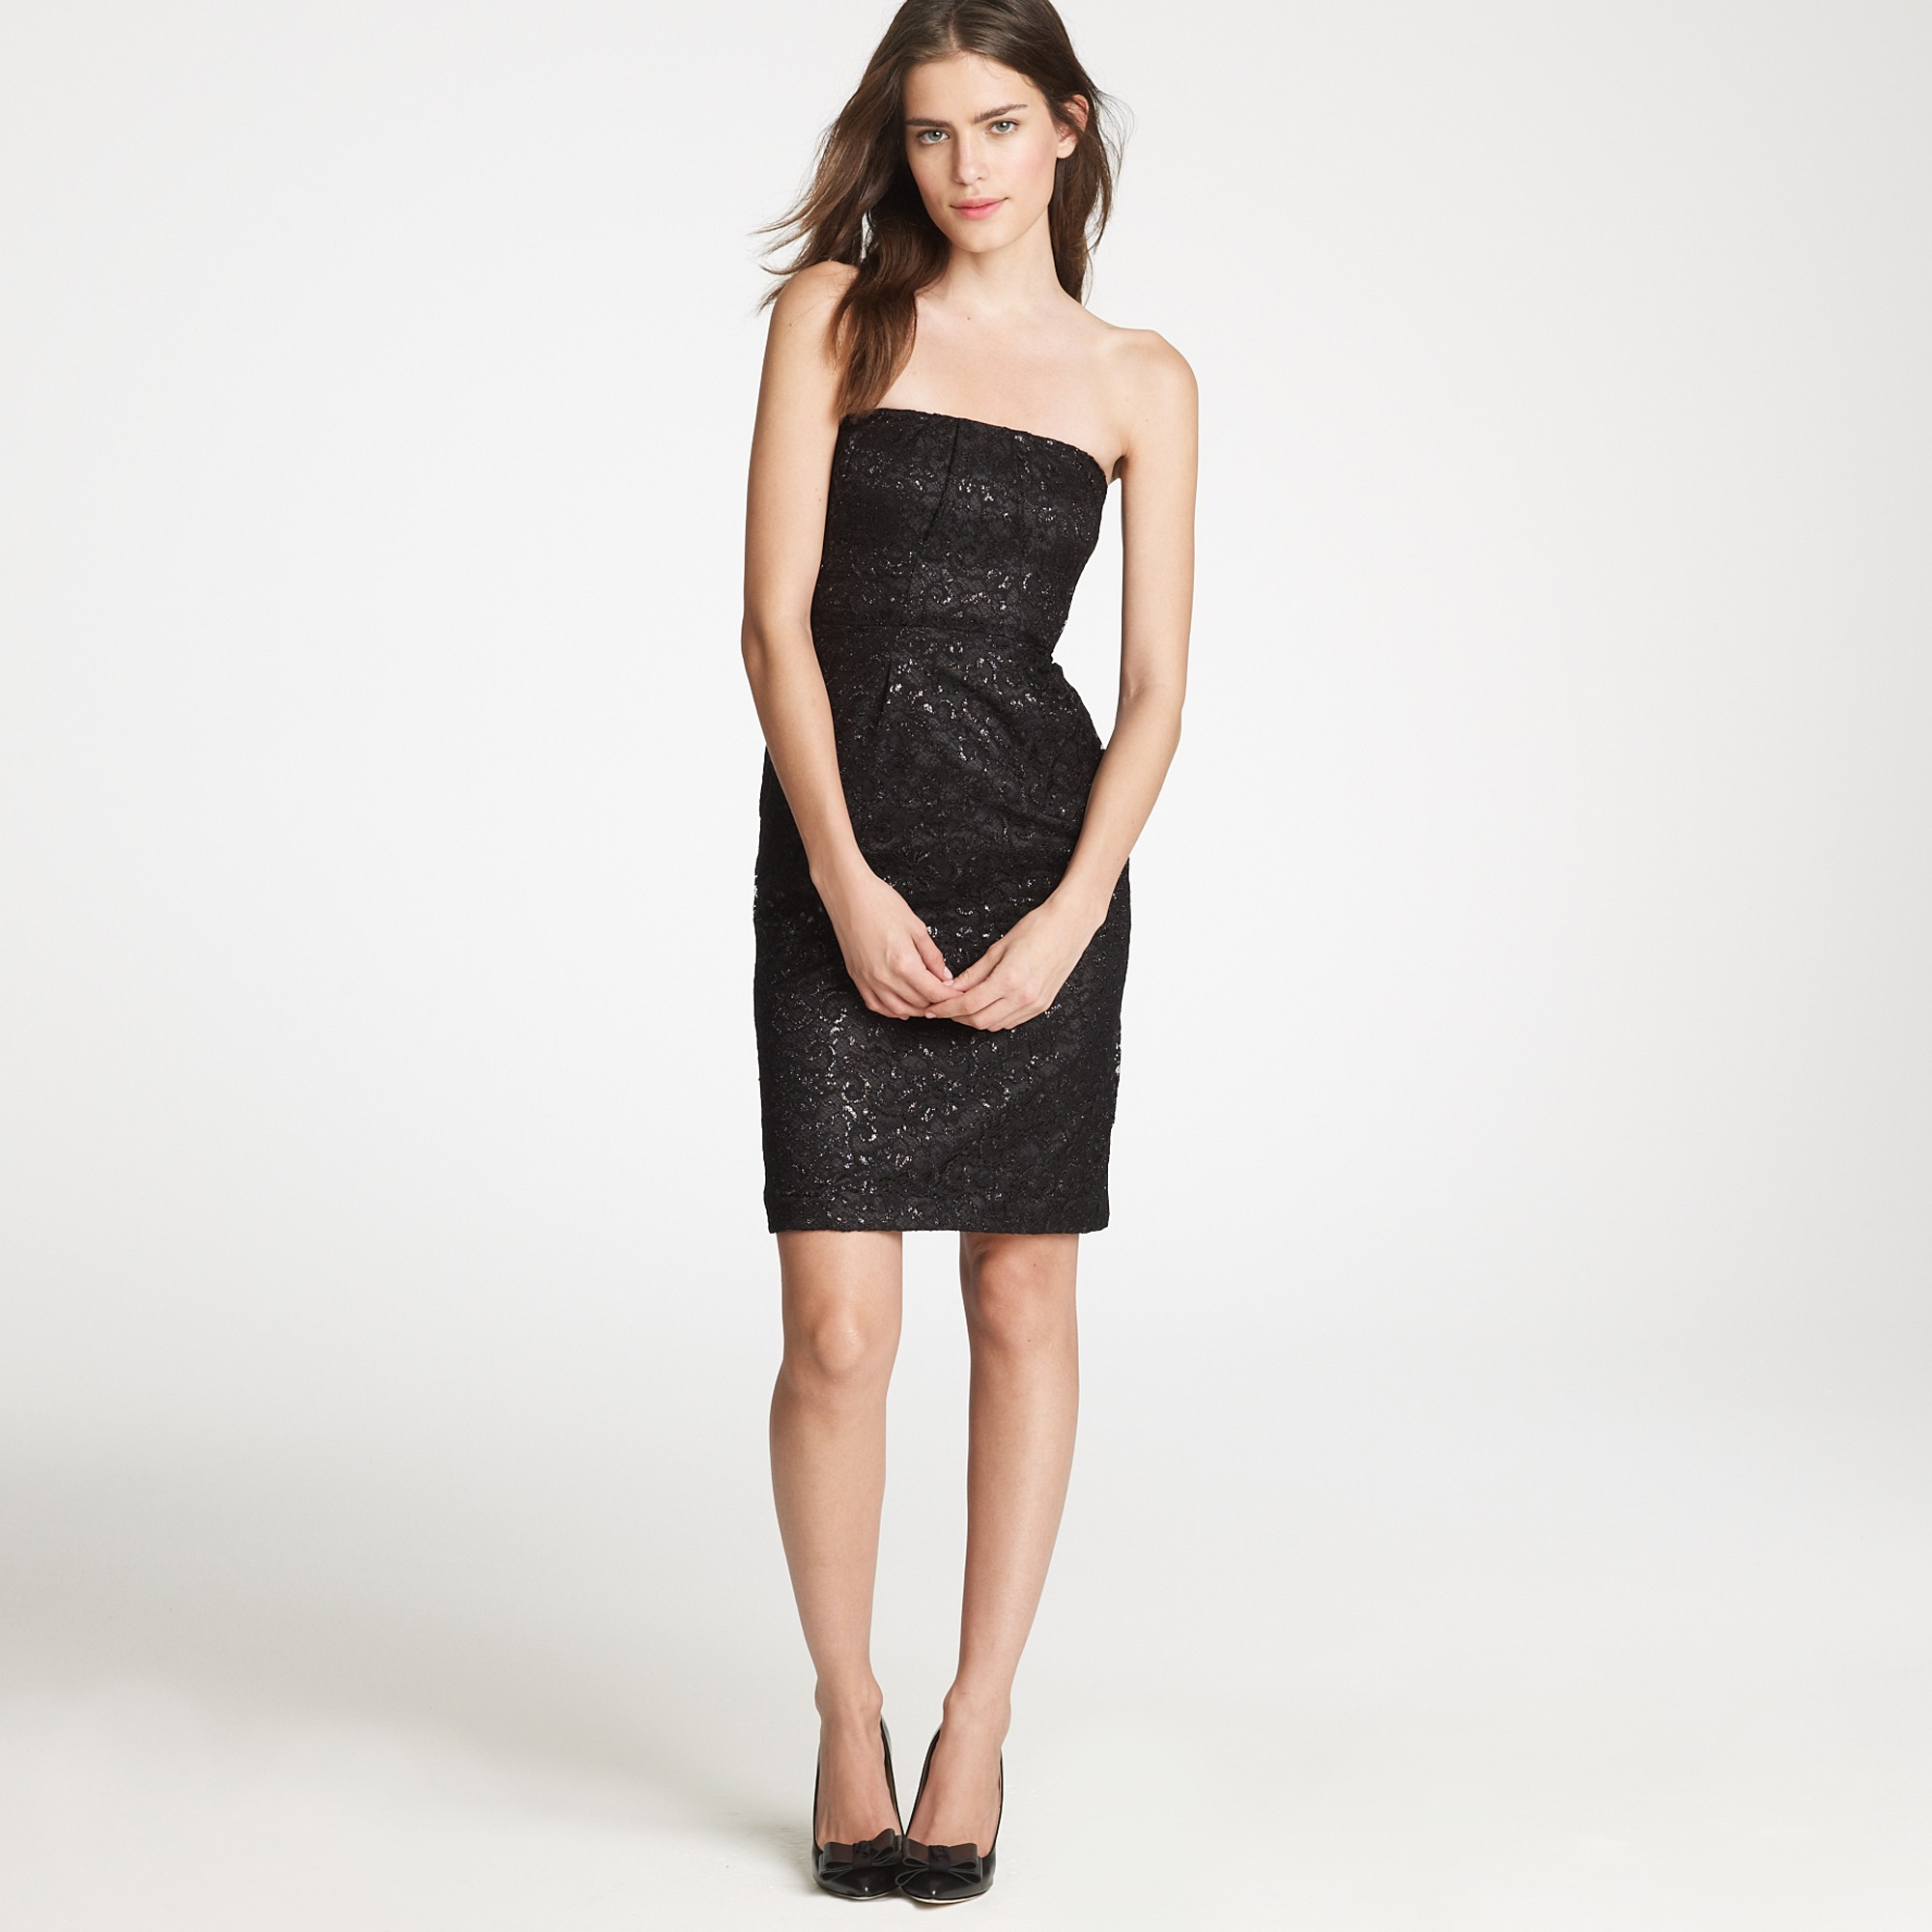 J.crew Tinsel Lace Dress in Black